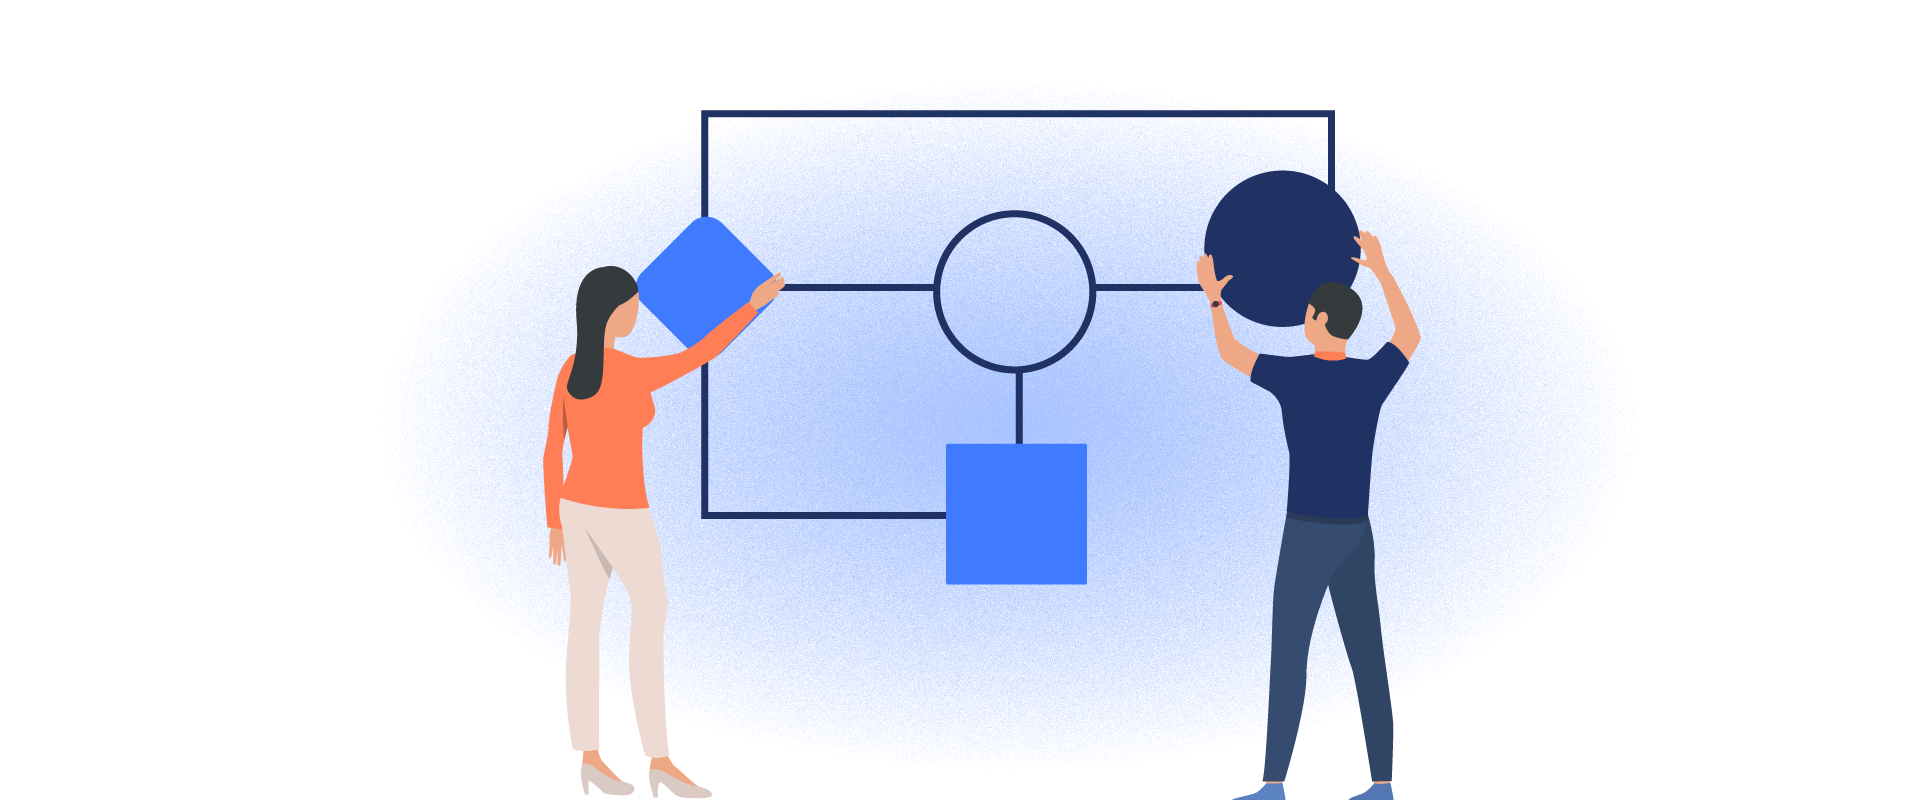 Use the whole host of digital apps that make life easier, more organized, and best of all – save time. Just by using Google Suite, you can stop wasting time at work as you can make notes, create tasks, send meeting requests, and do everything else virtually